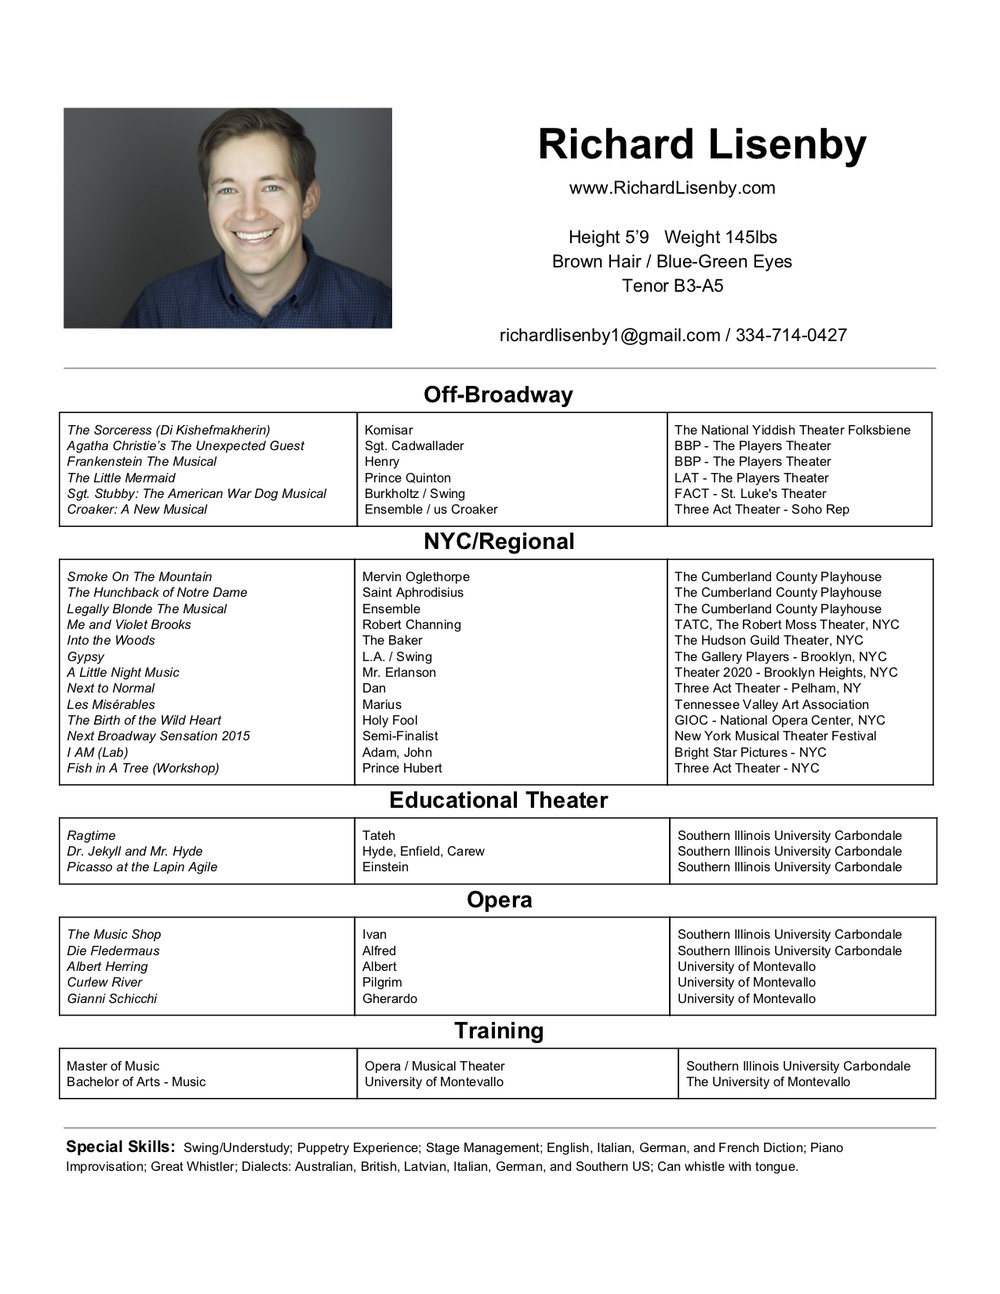 Richard Lisenby MT Resume (3)jpg.jpg